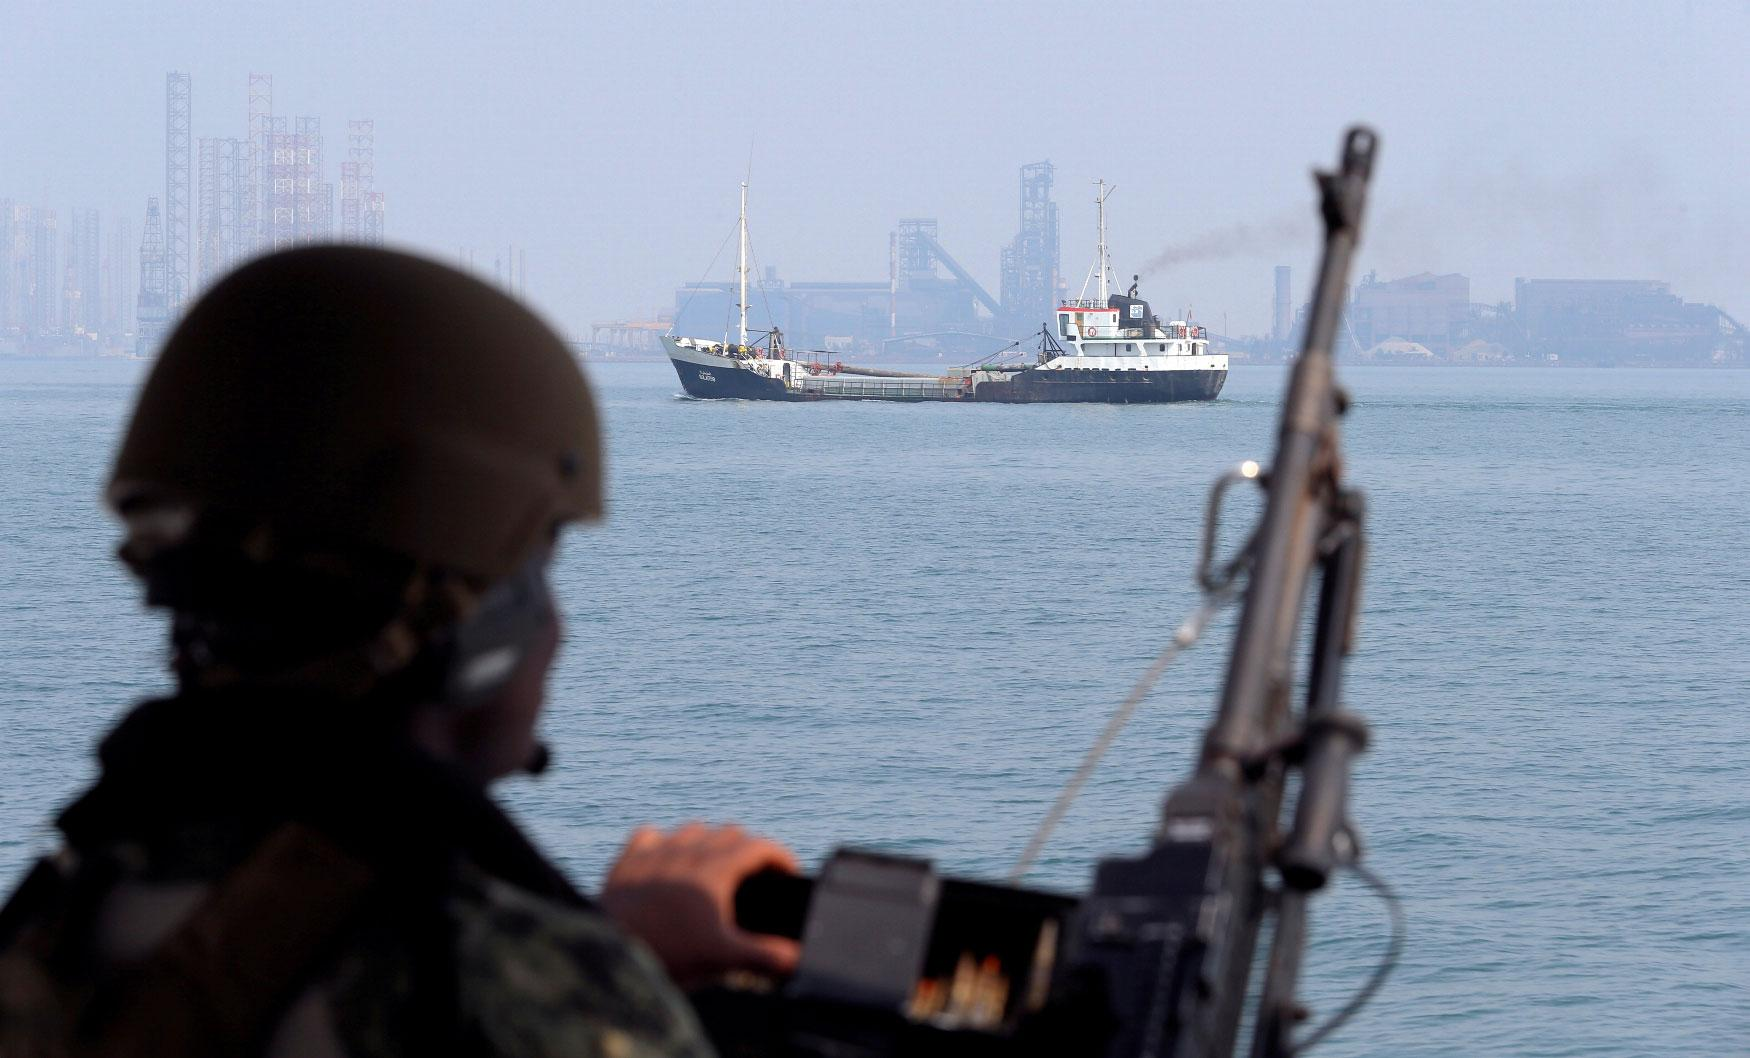 US Navy soldier stands guard as an oil tanker sails past.